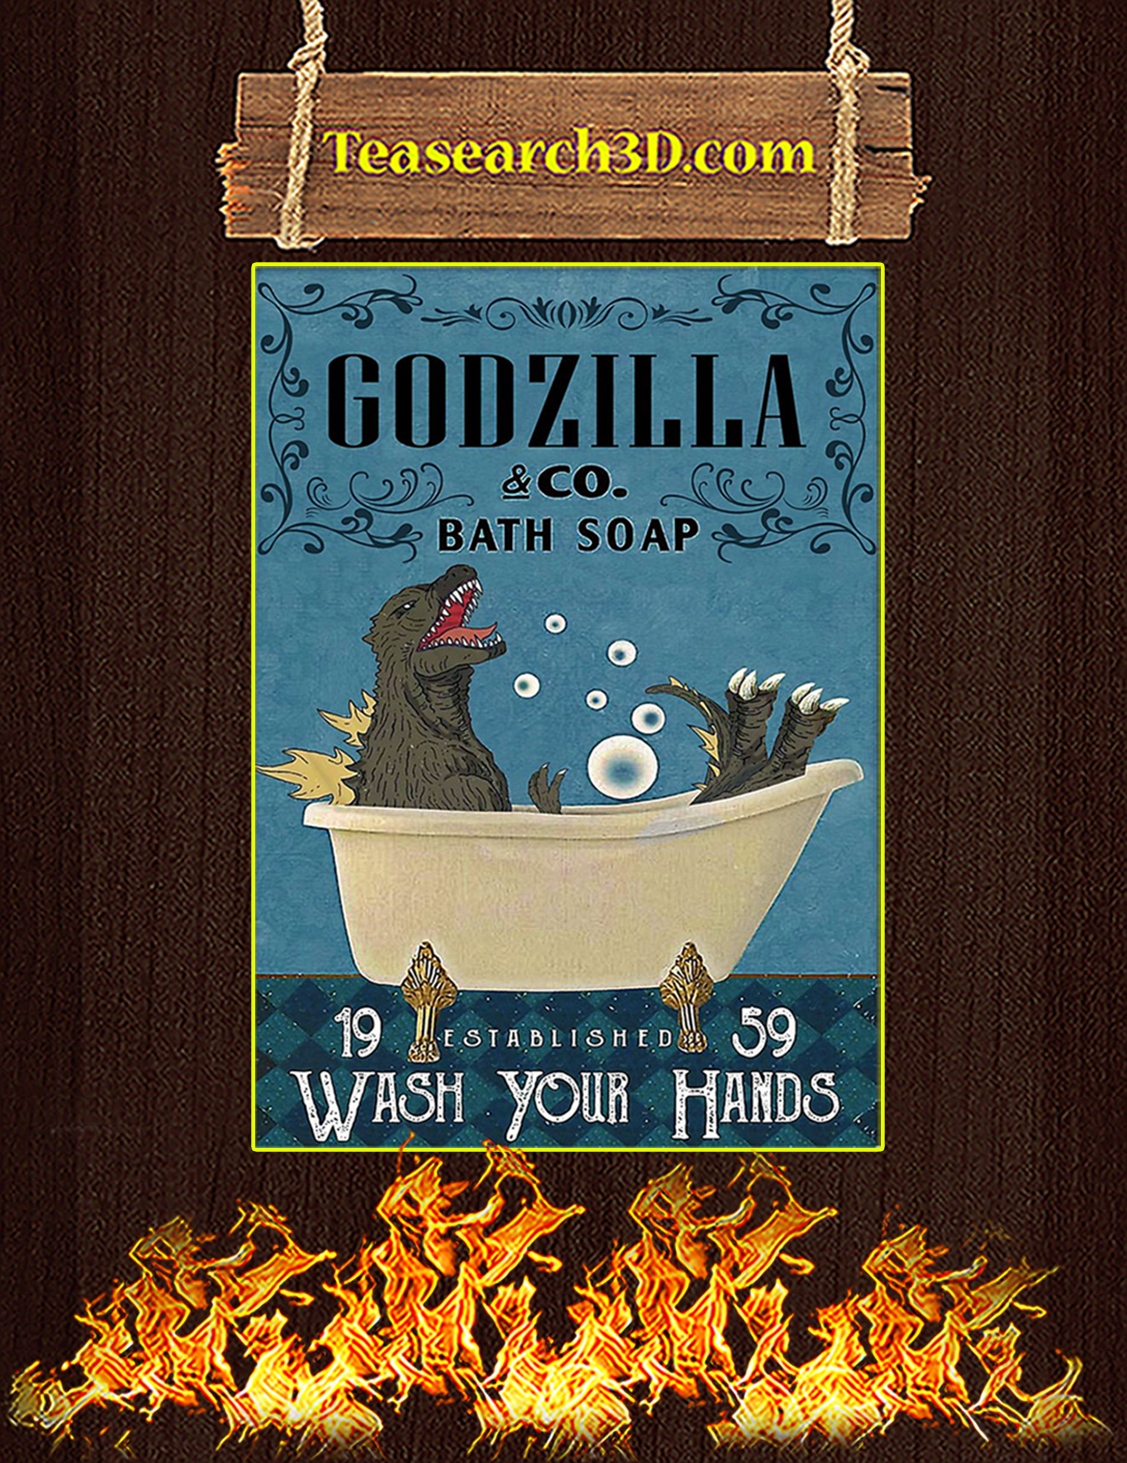 Godzilla co bath soap wash your hands poster A3